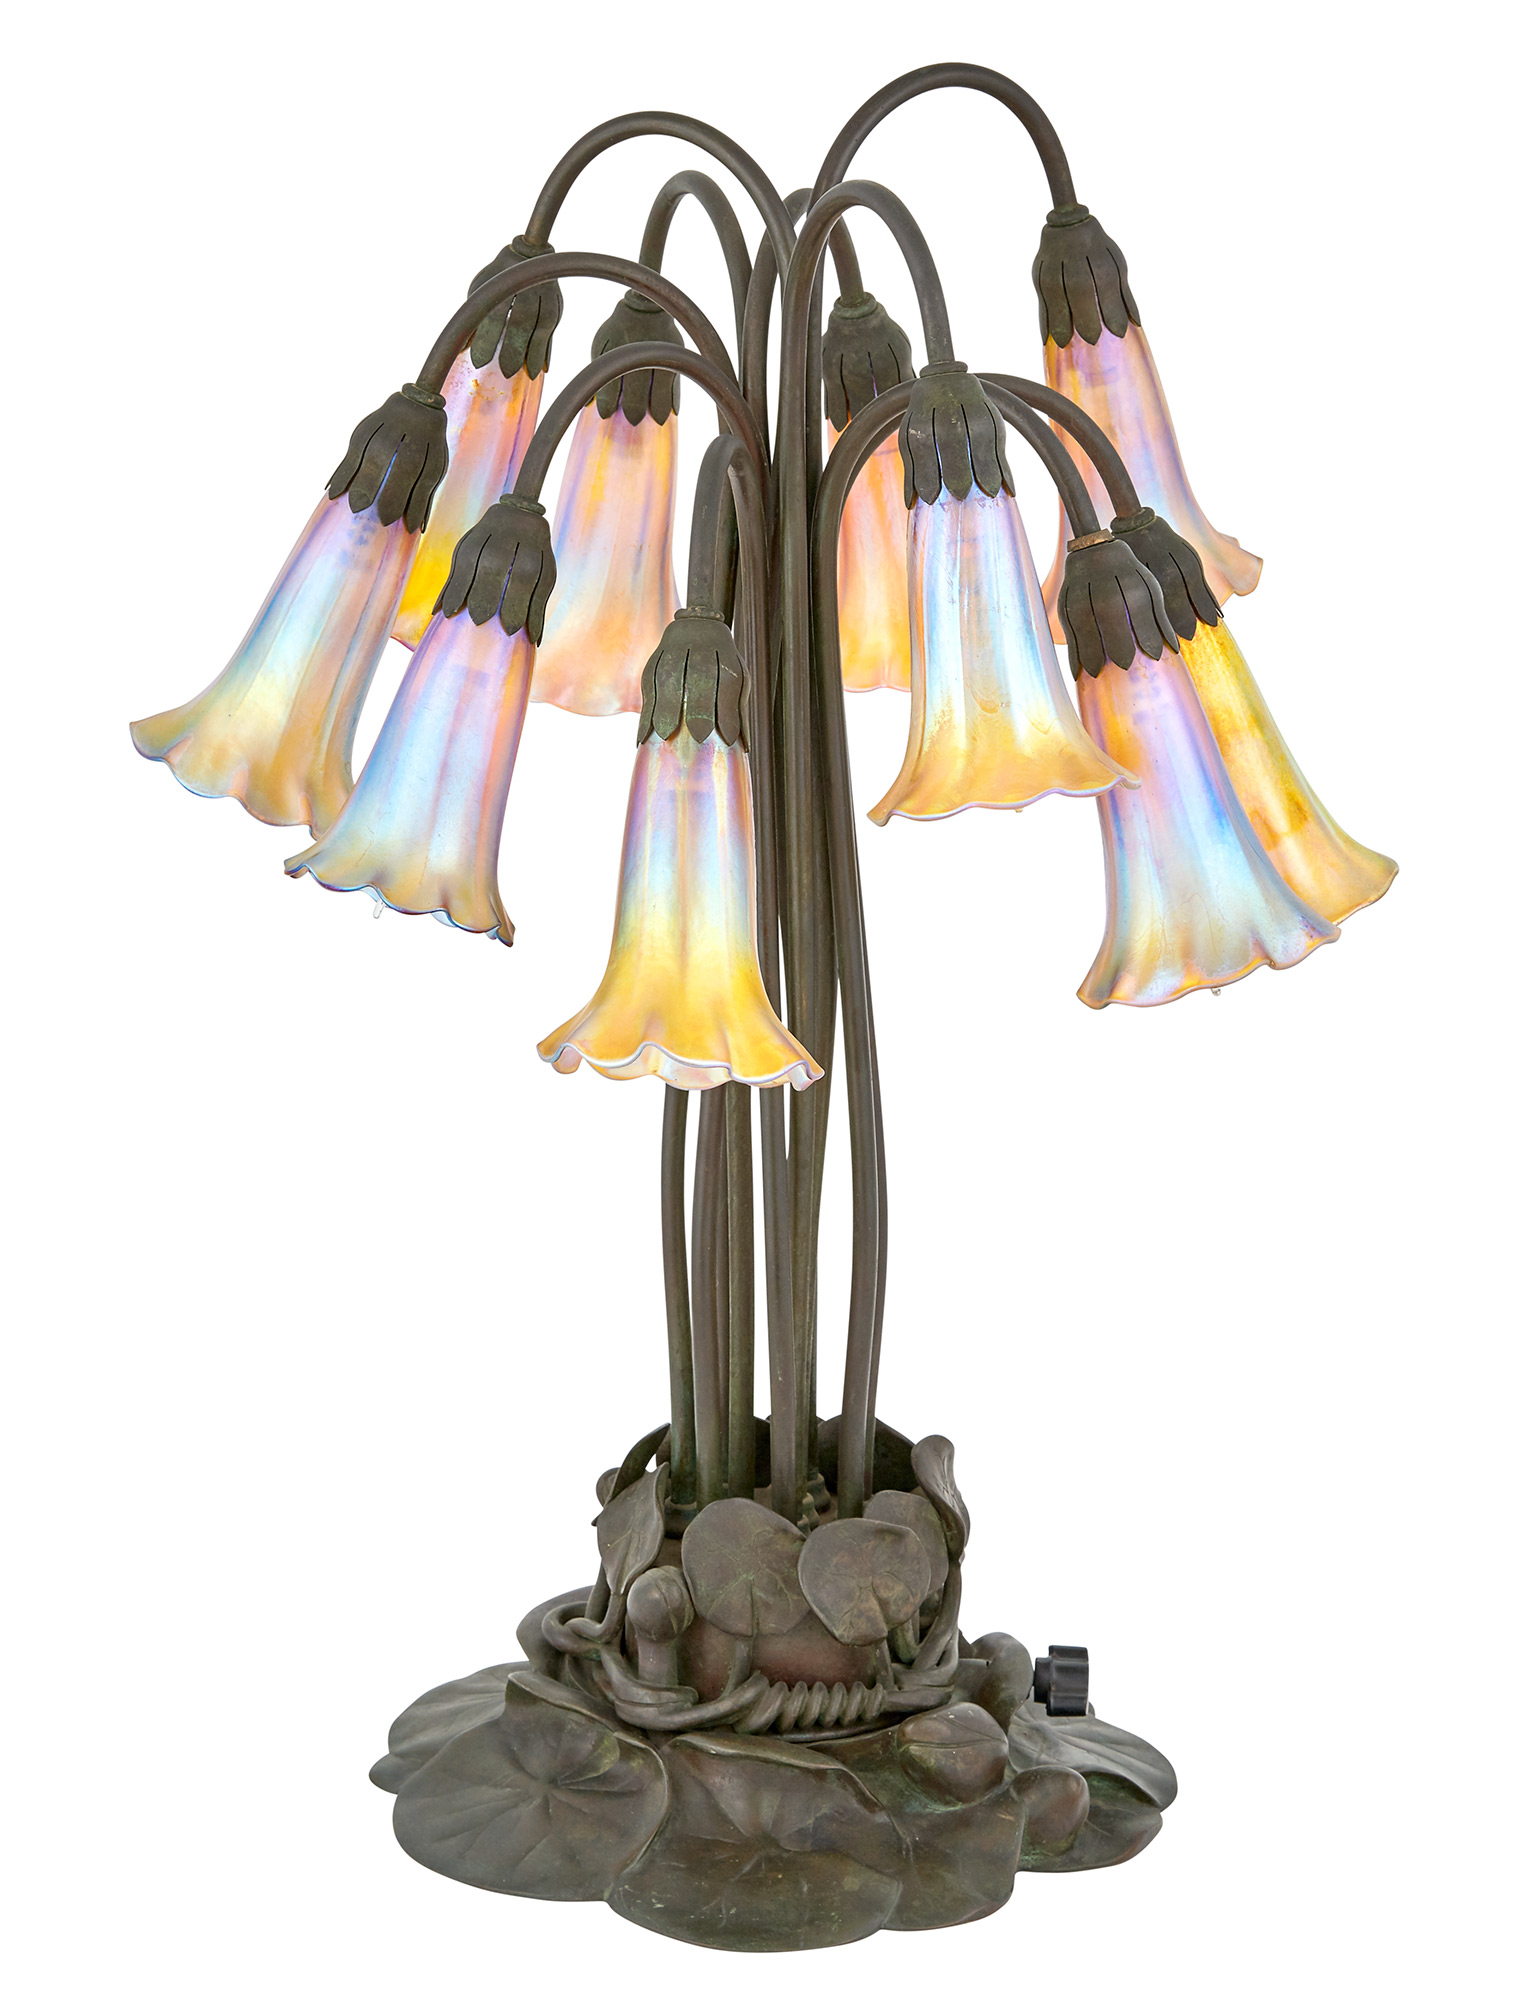 Lot image - Tiffany Studios Bronze and Gold Favrile Glass Ten-Light Pond Lily Lamp